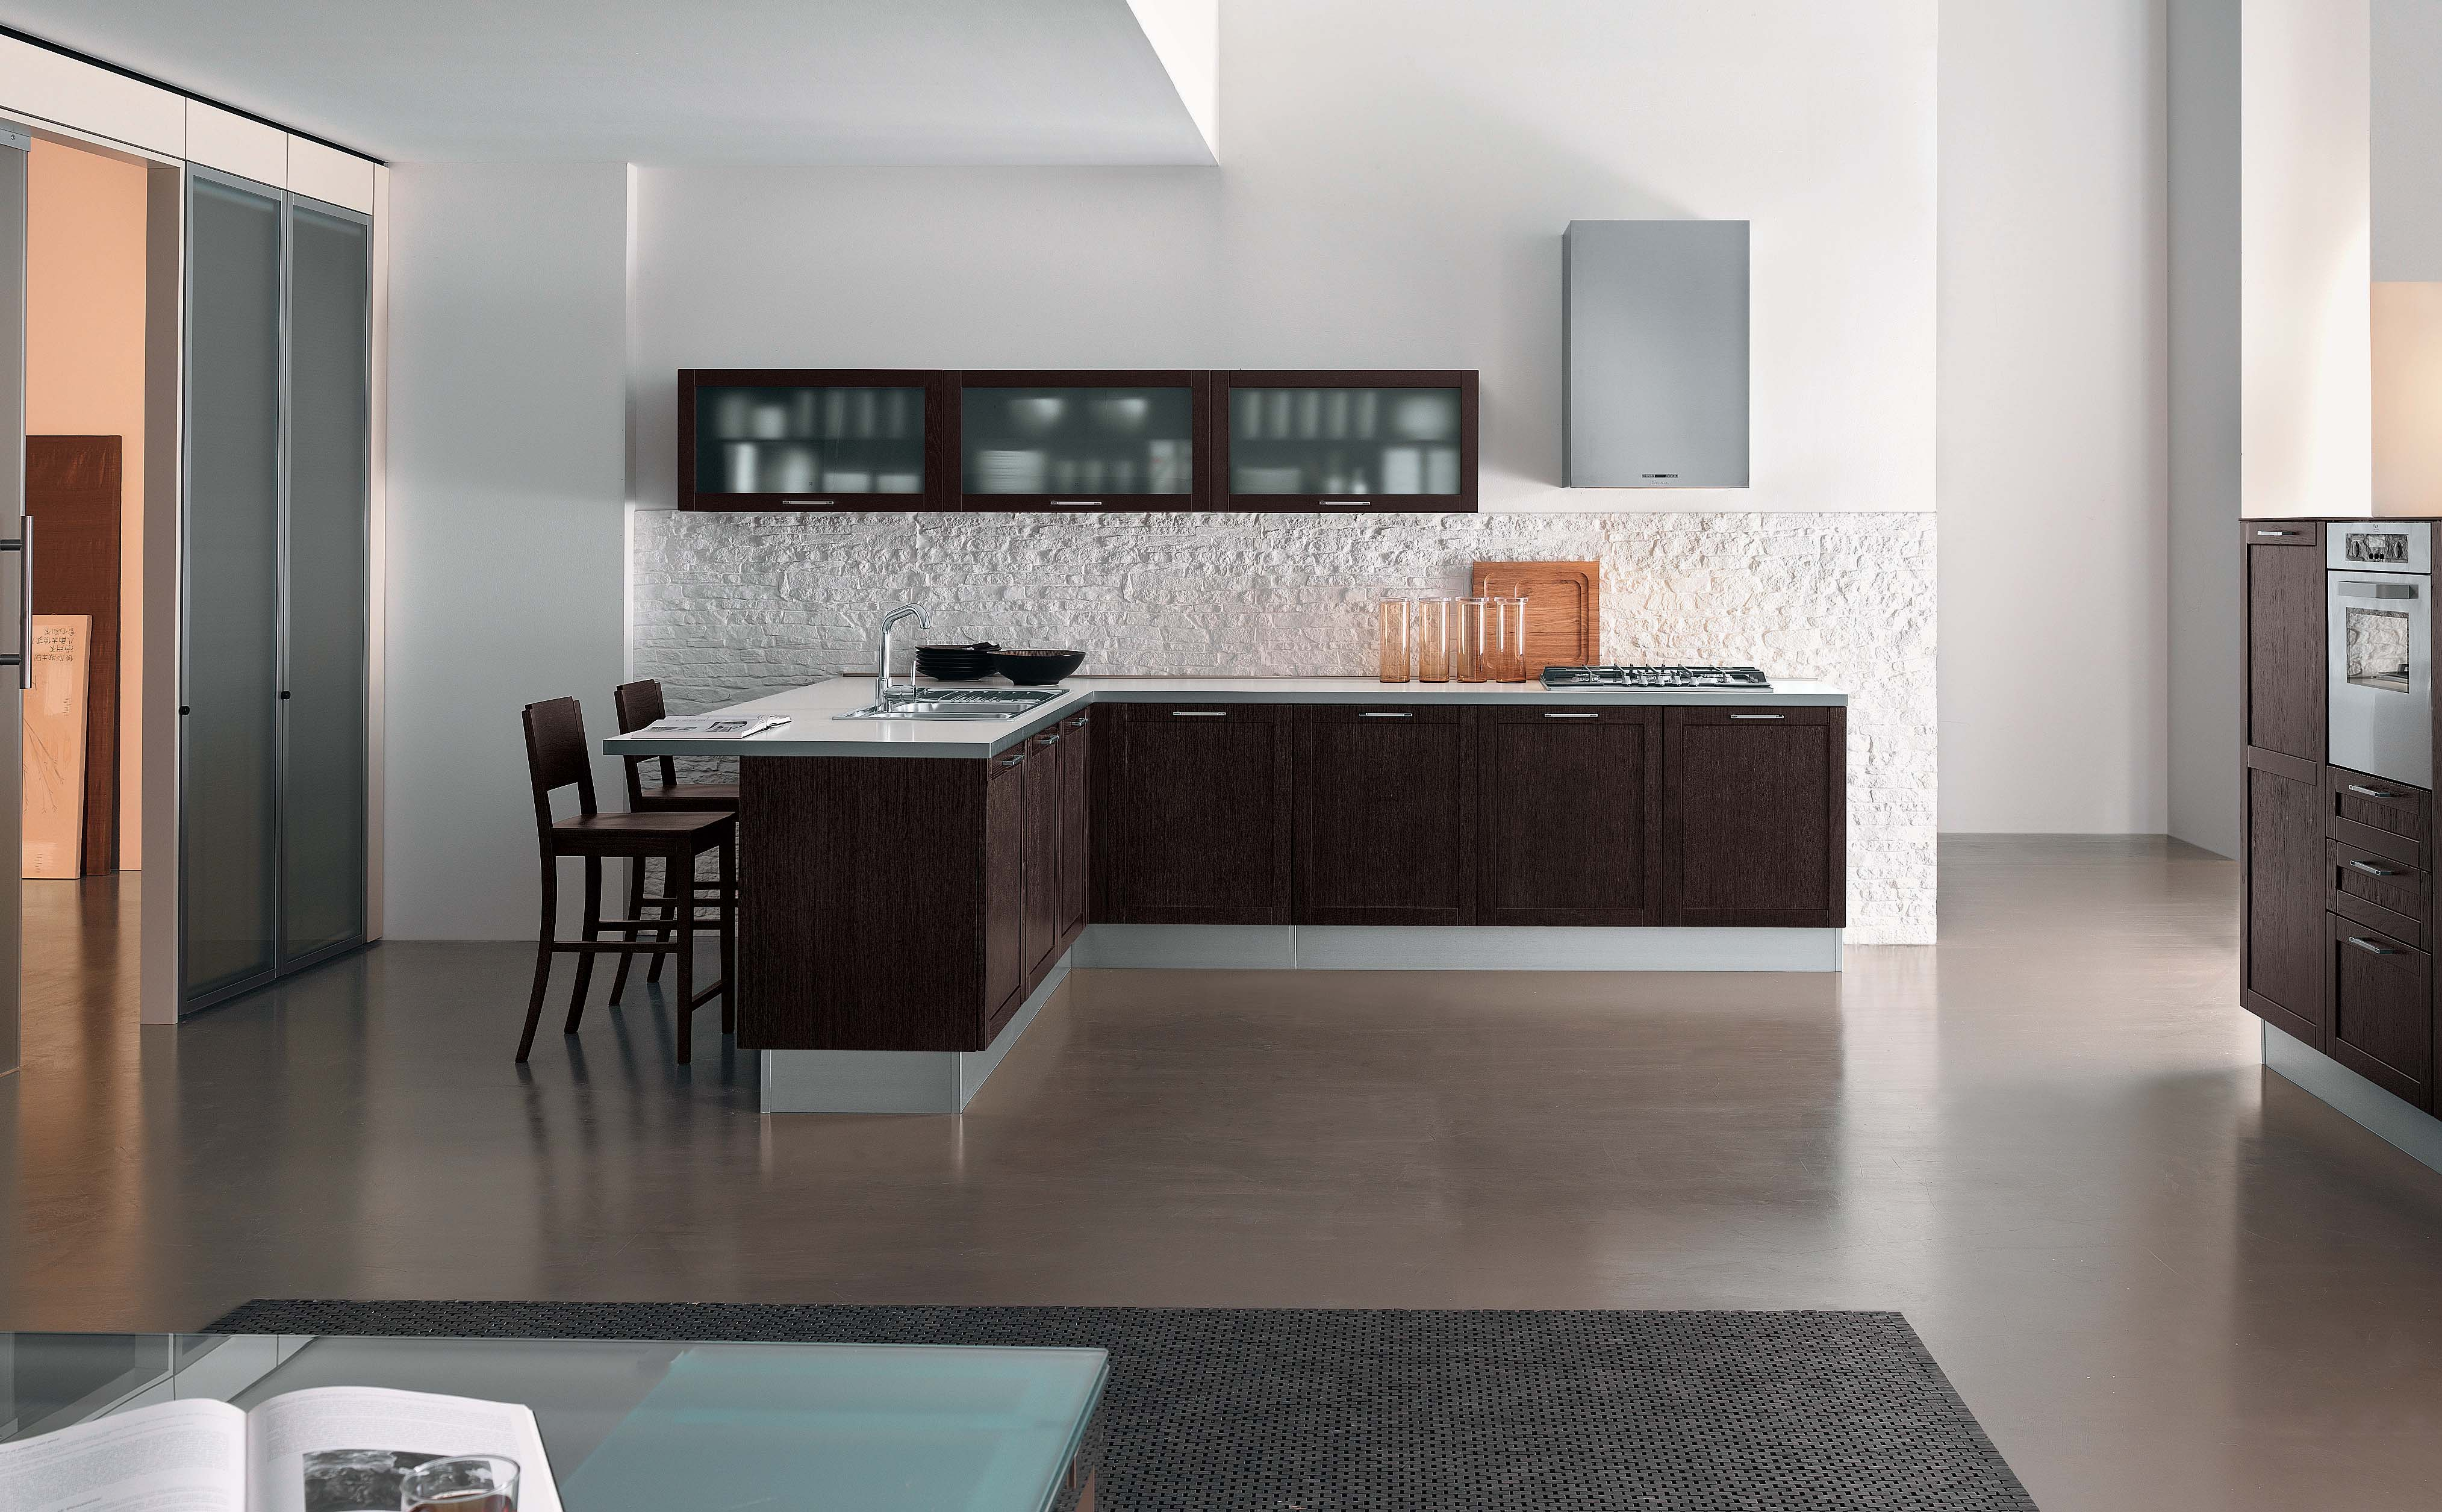 Perfect Modern Kitchen Interior Design 4055 x 2511 · 853 kB · jpeg